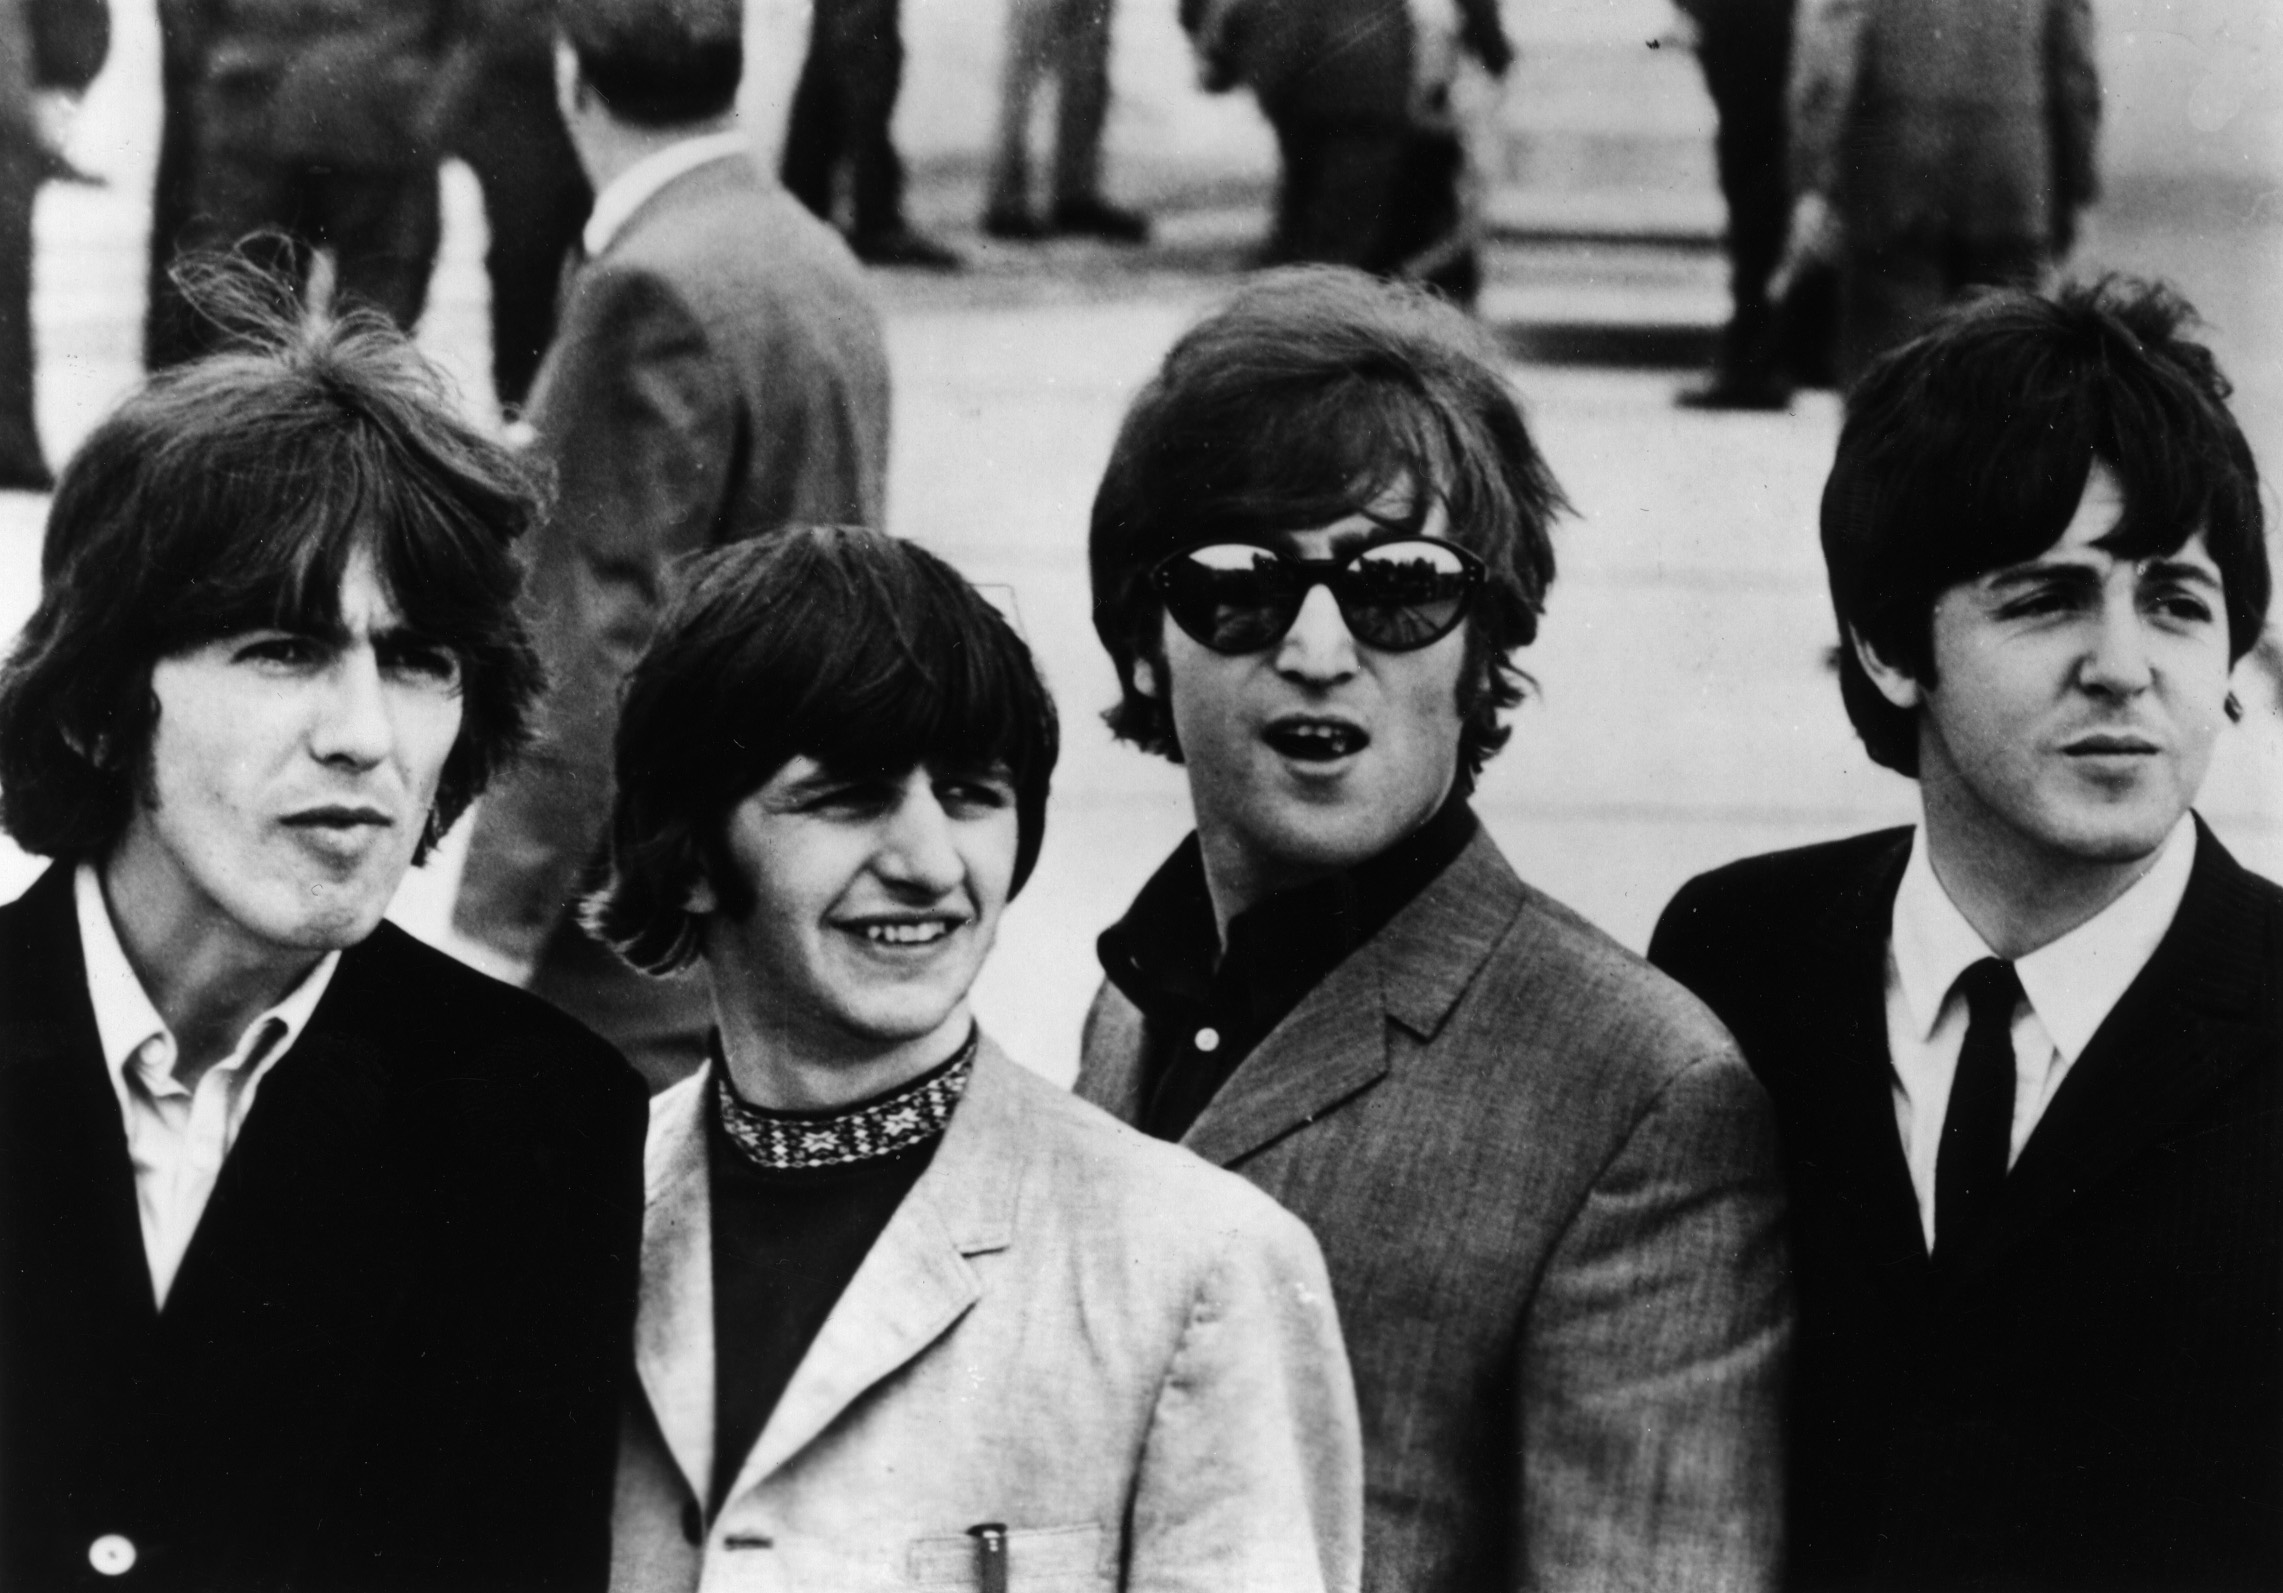 A Revolution Recalled: When The Beatles came to town | America Magazine